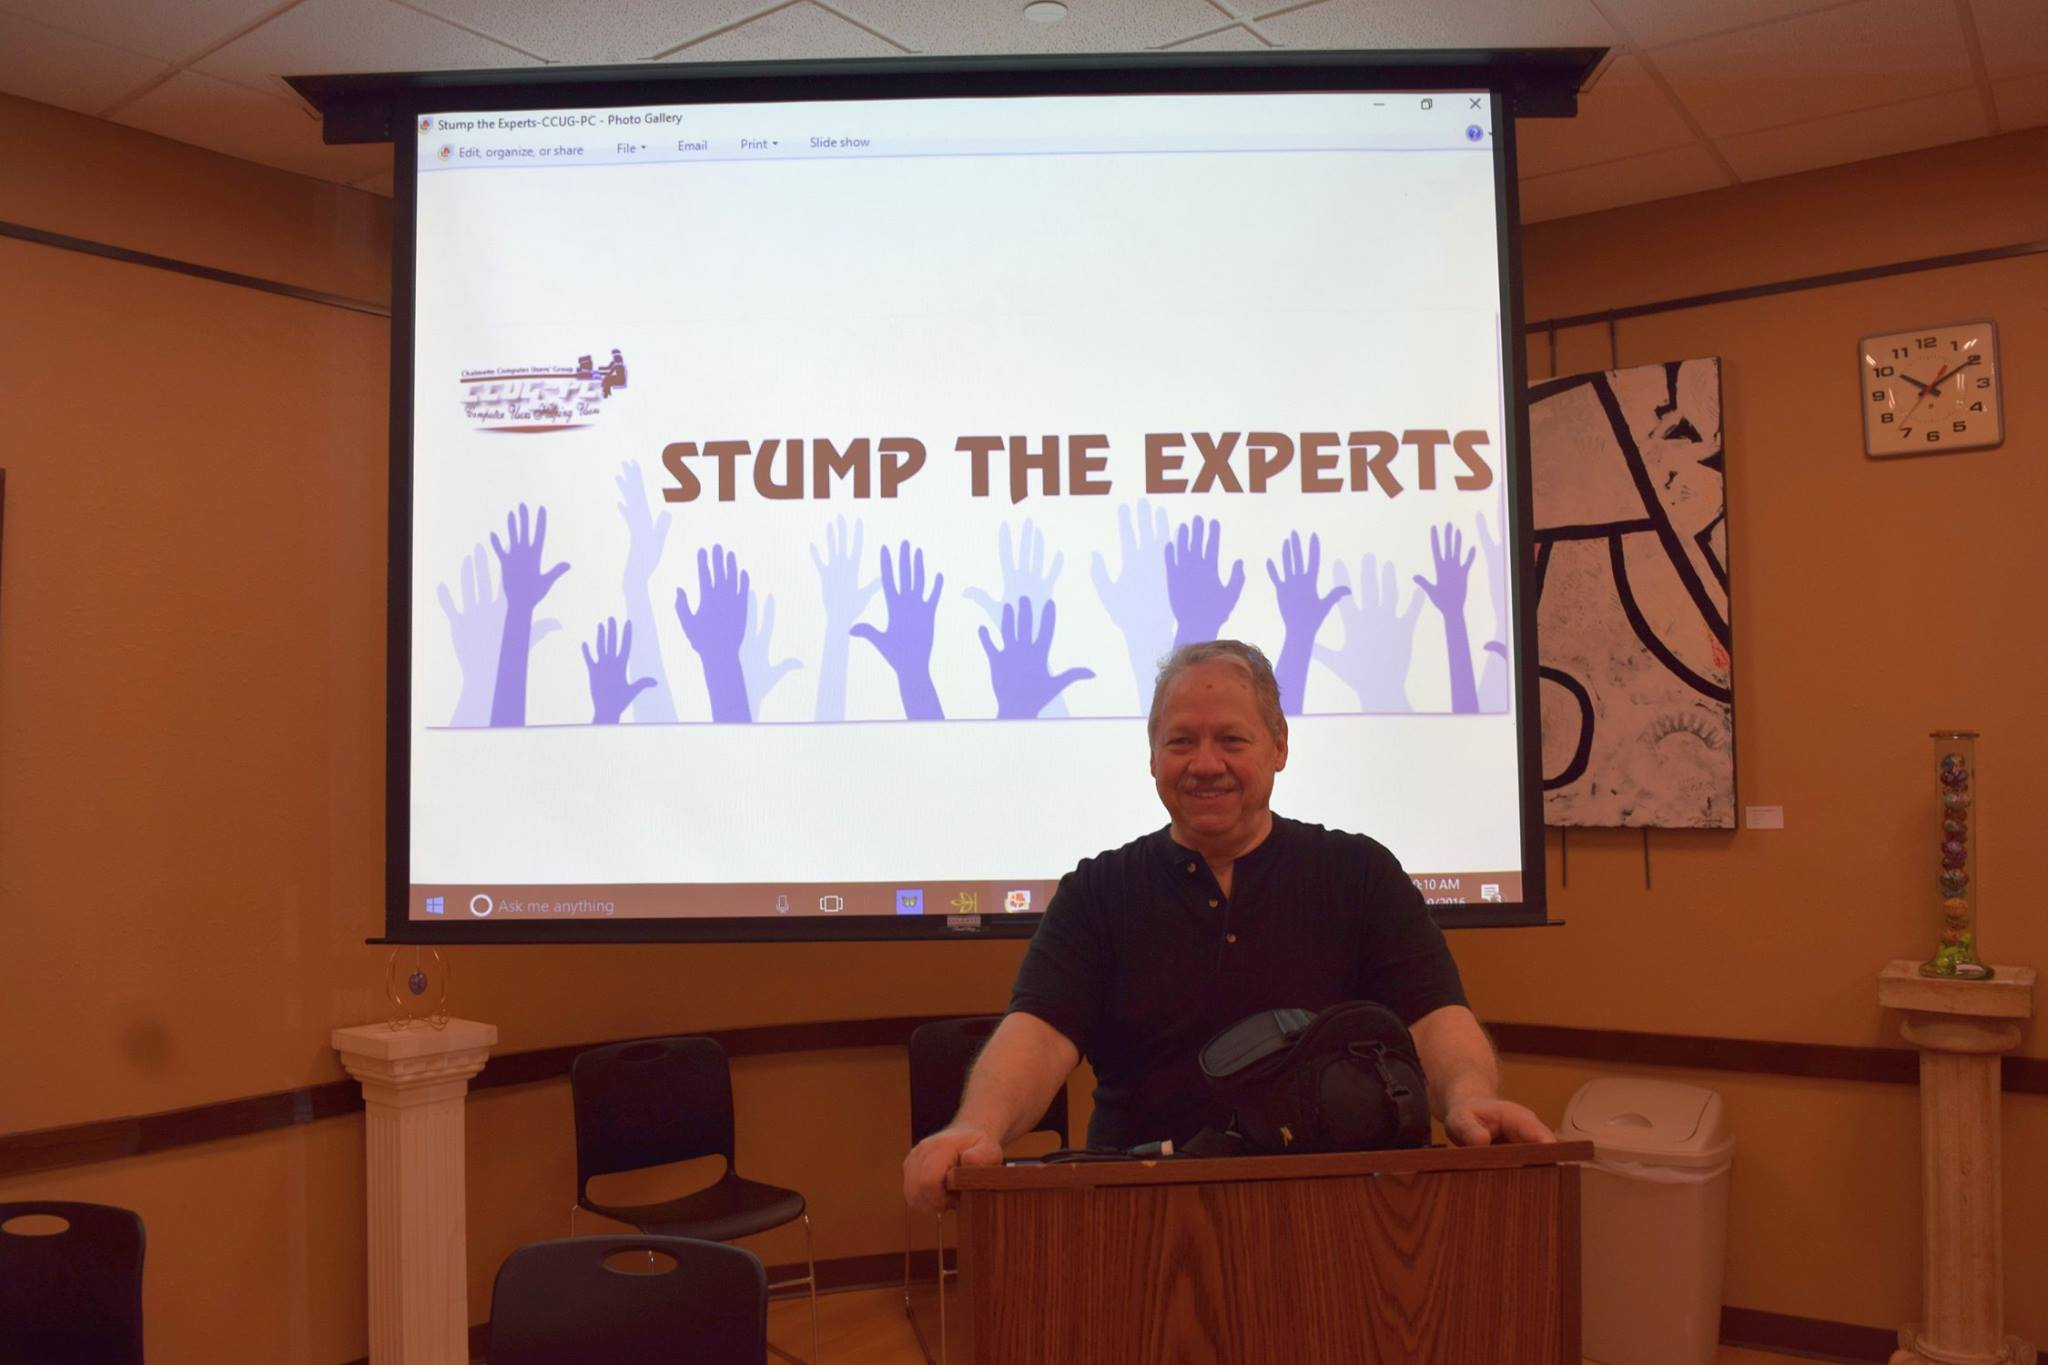 Stump the Experts!